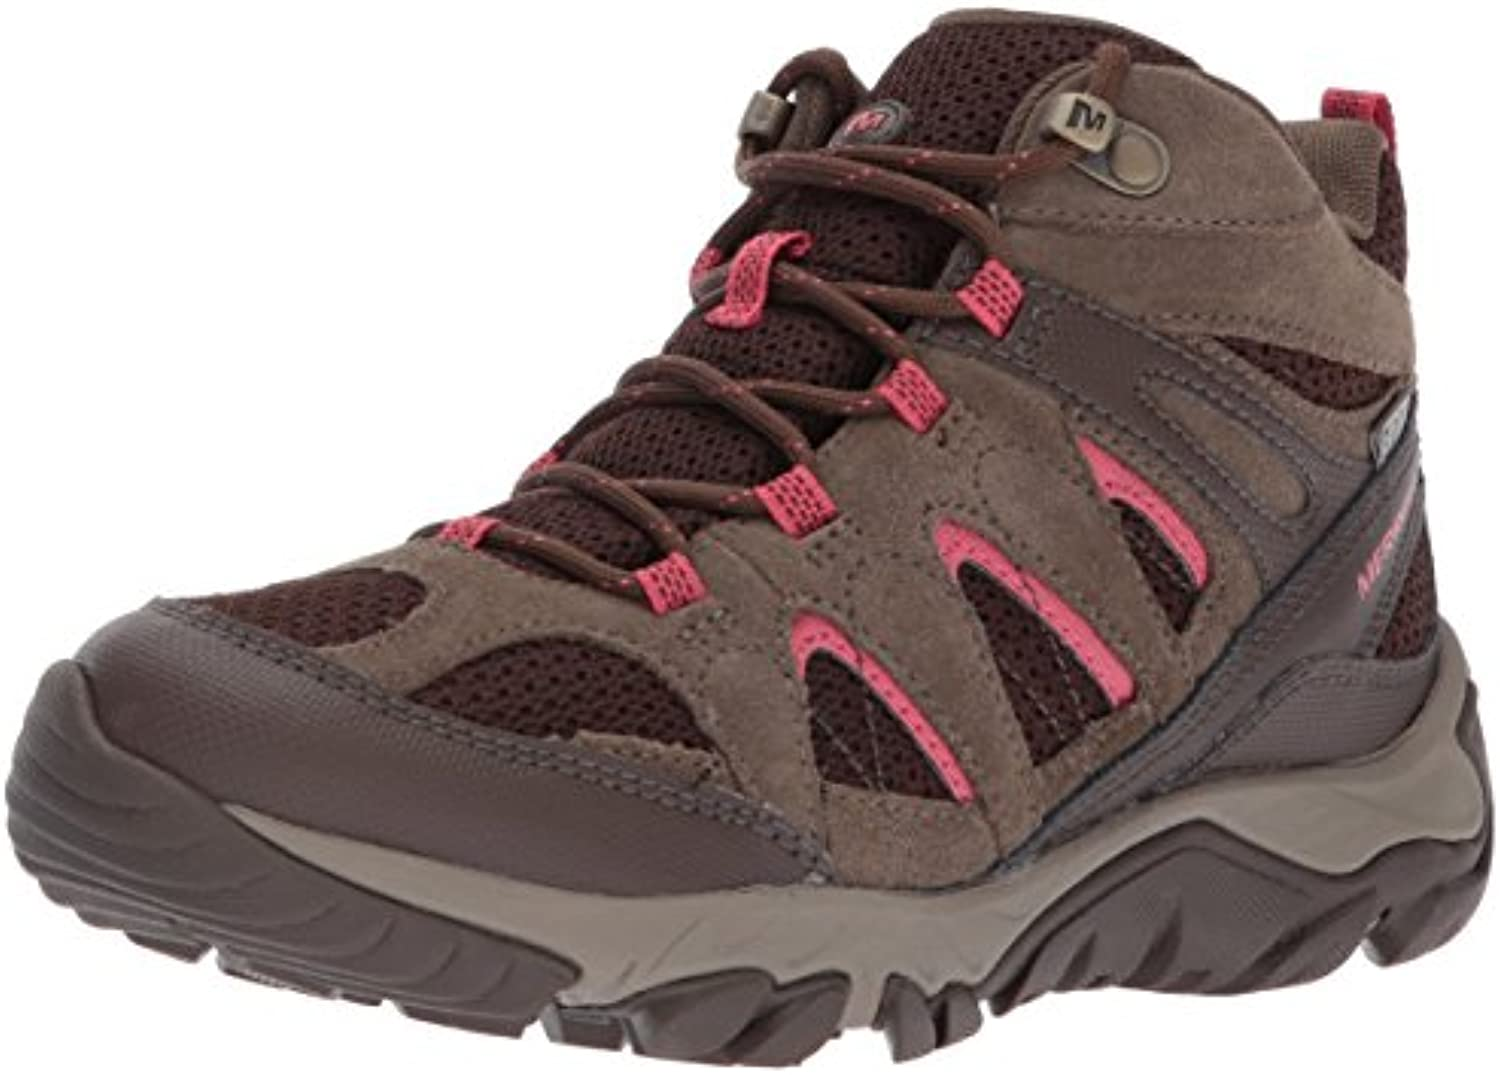 MerrellOUTMOST Mid Vent WTPF - Outmost Mid Vent WTPF Donna | In Linea Outlet Store  | Uomini/Donna Scarpa